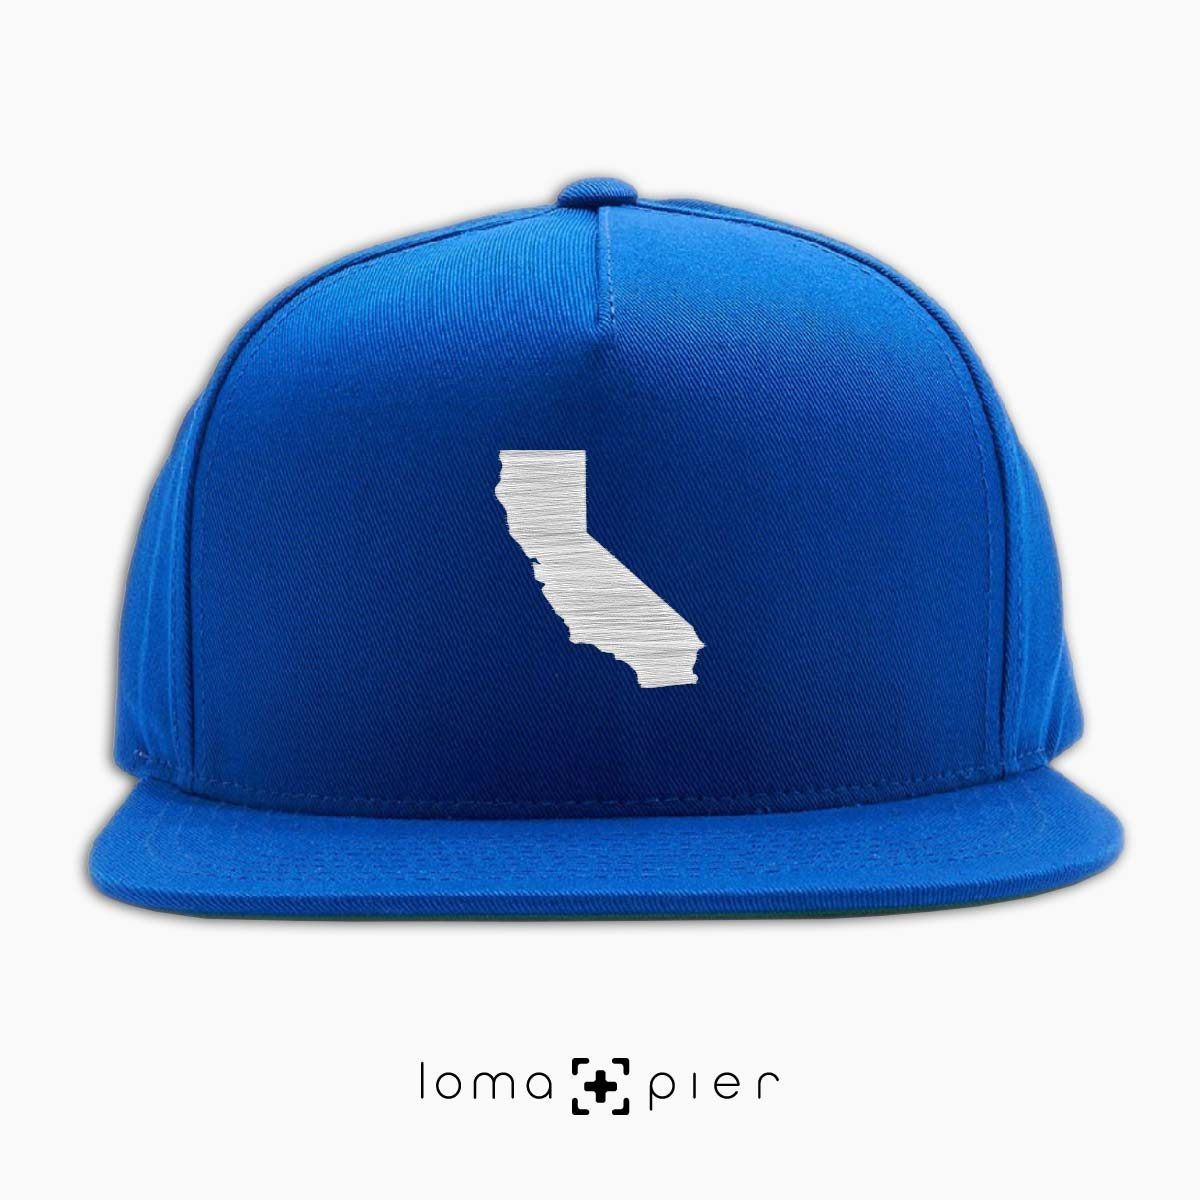 CALIFORNIA silhouette icon embroidered on a royal blue classic snapback hat by loma+pier hat store